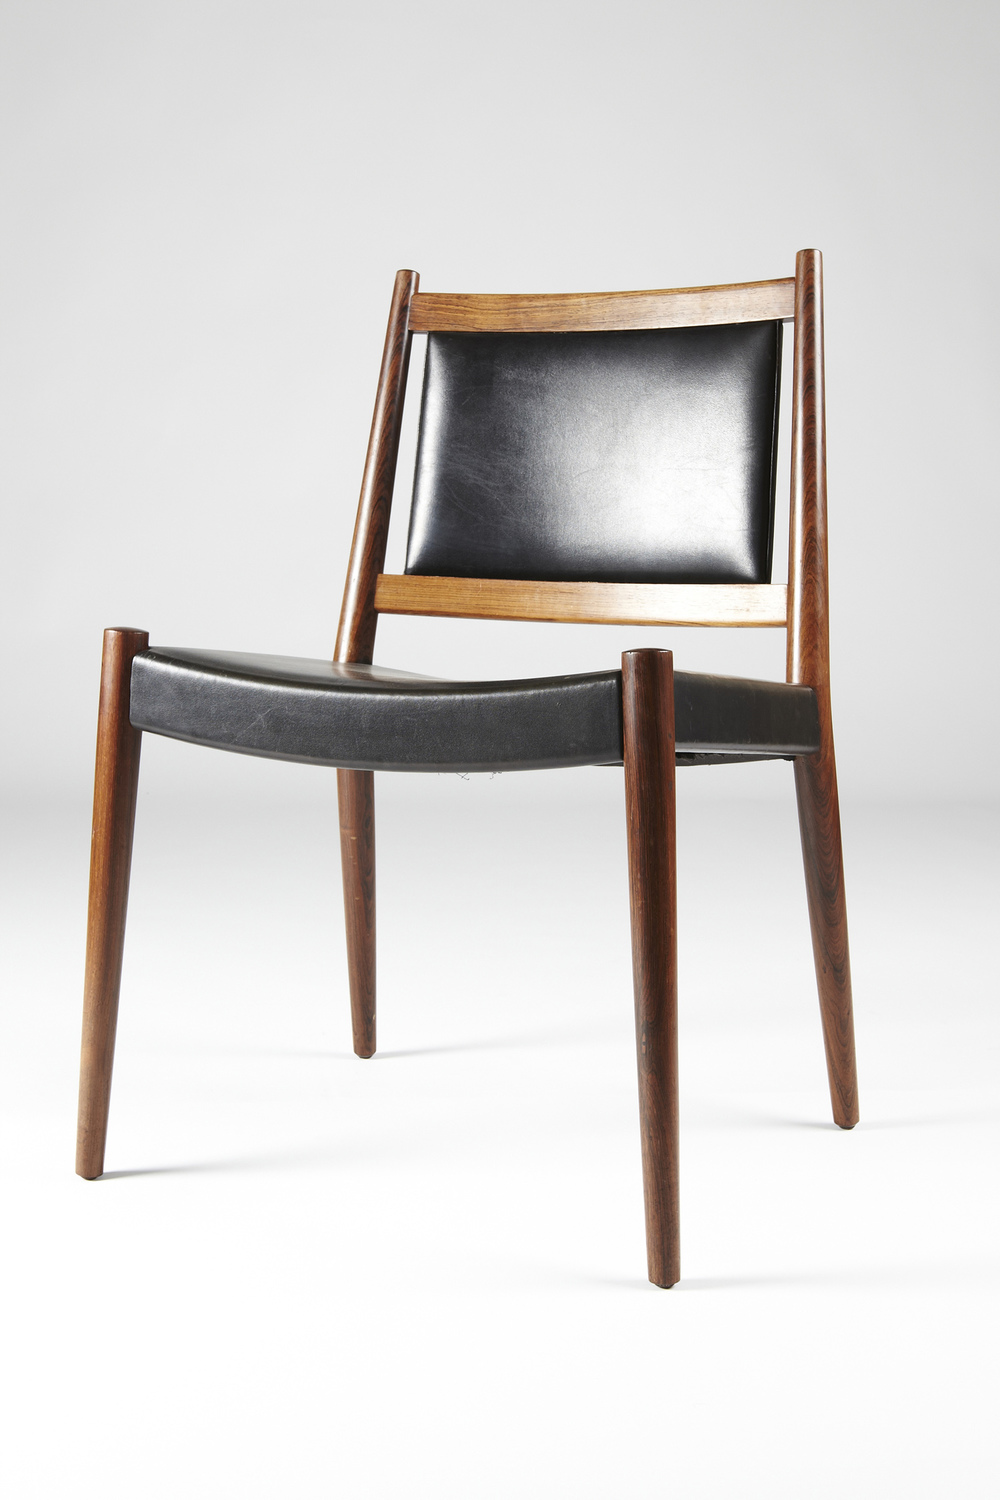 S S Larsen 1955 Dining Chair • made 1955-69 •